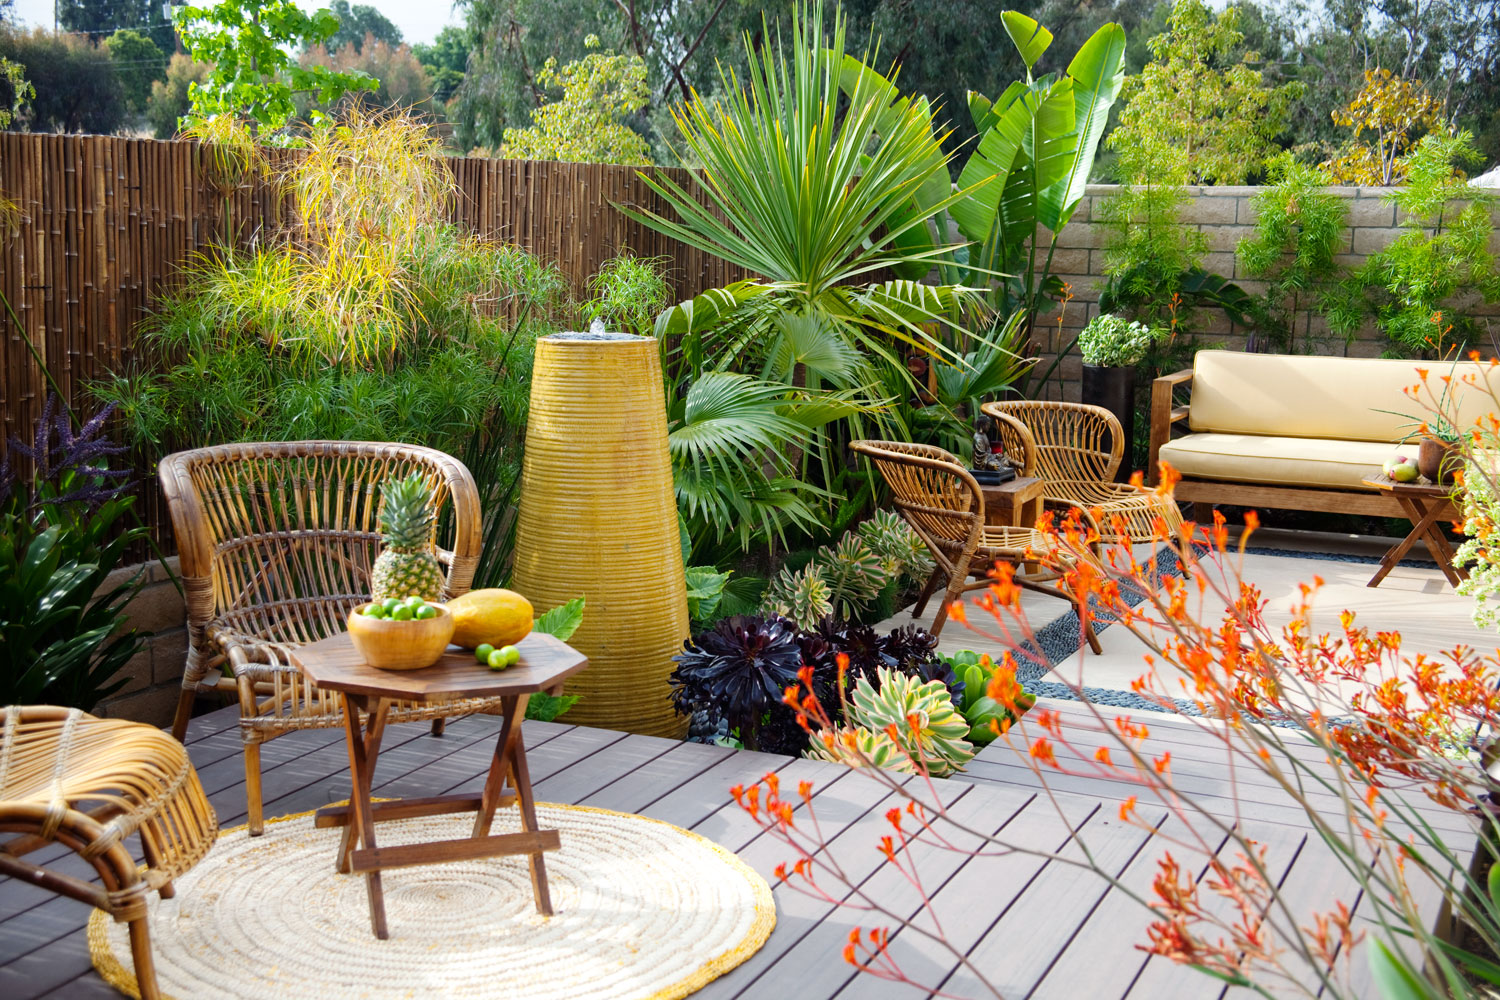 Care free garden design sunset magazine sunset magazine for Backyard patio design ideas